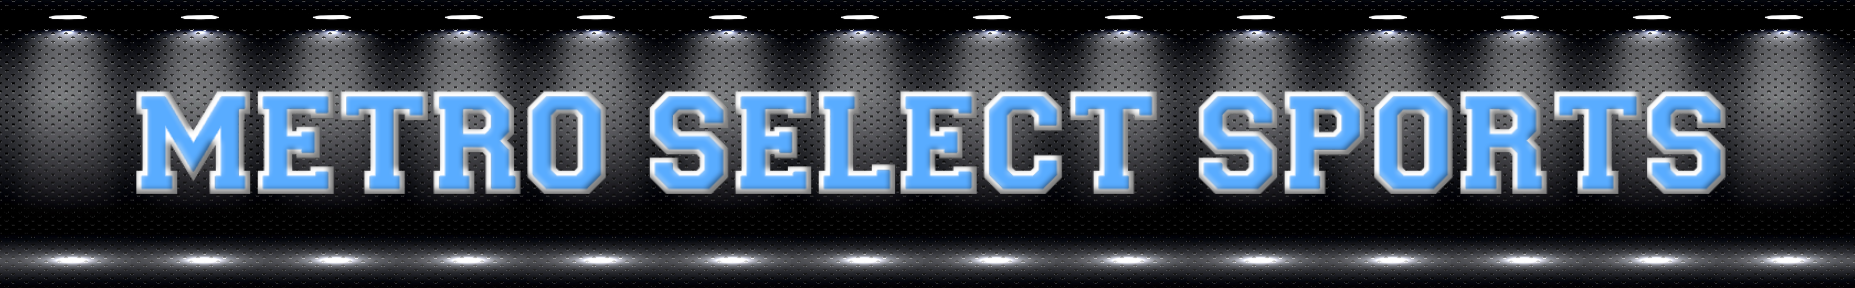 Metro select sports with lights